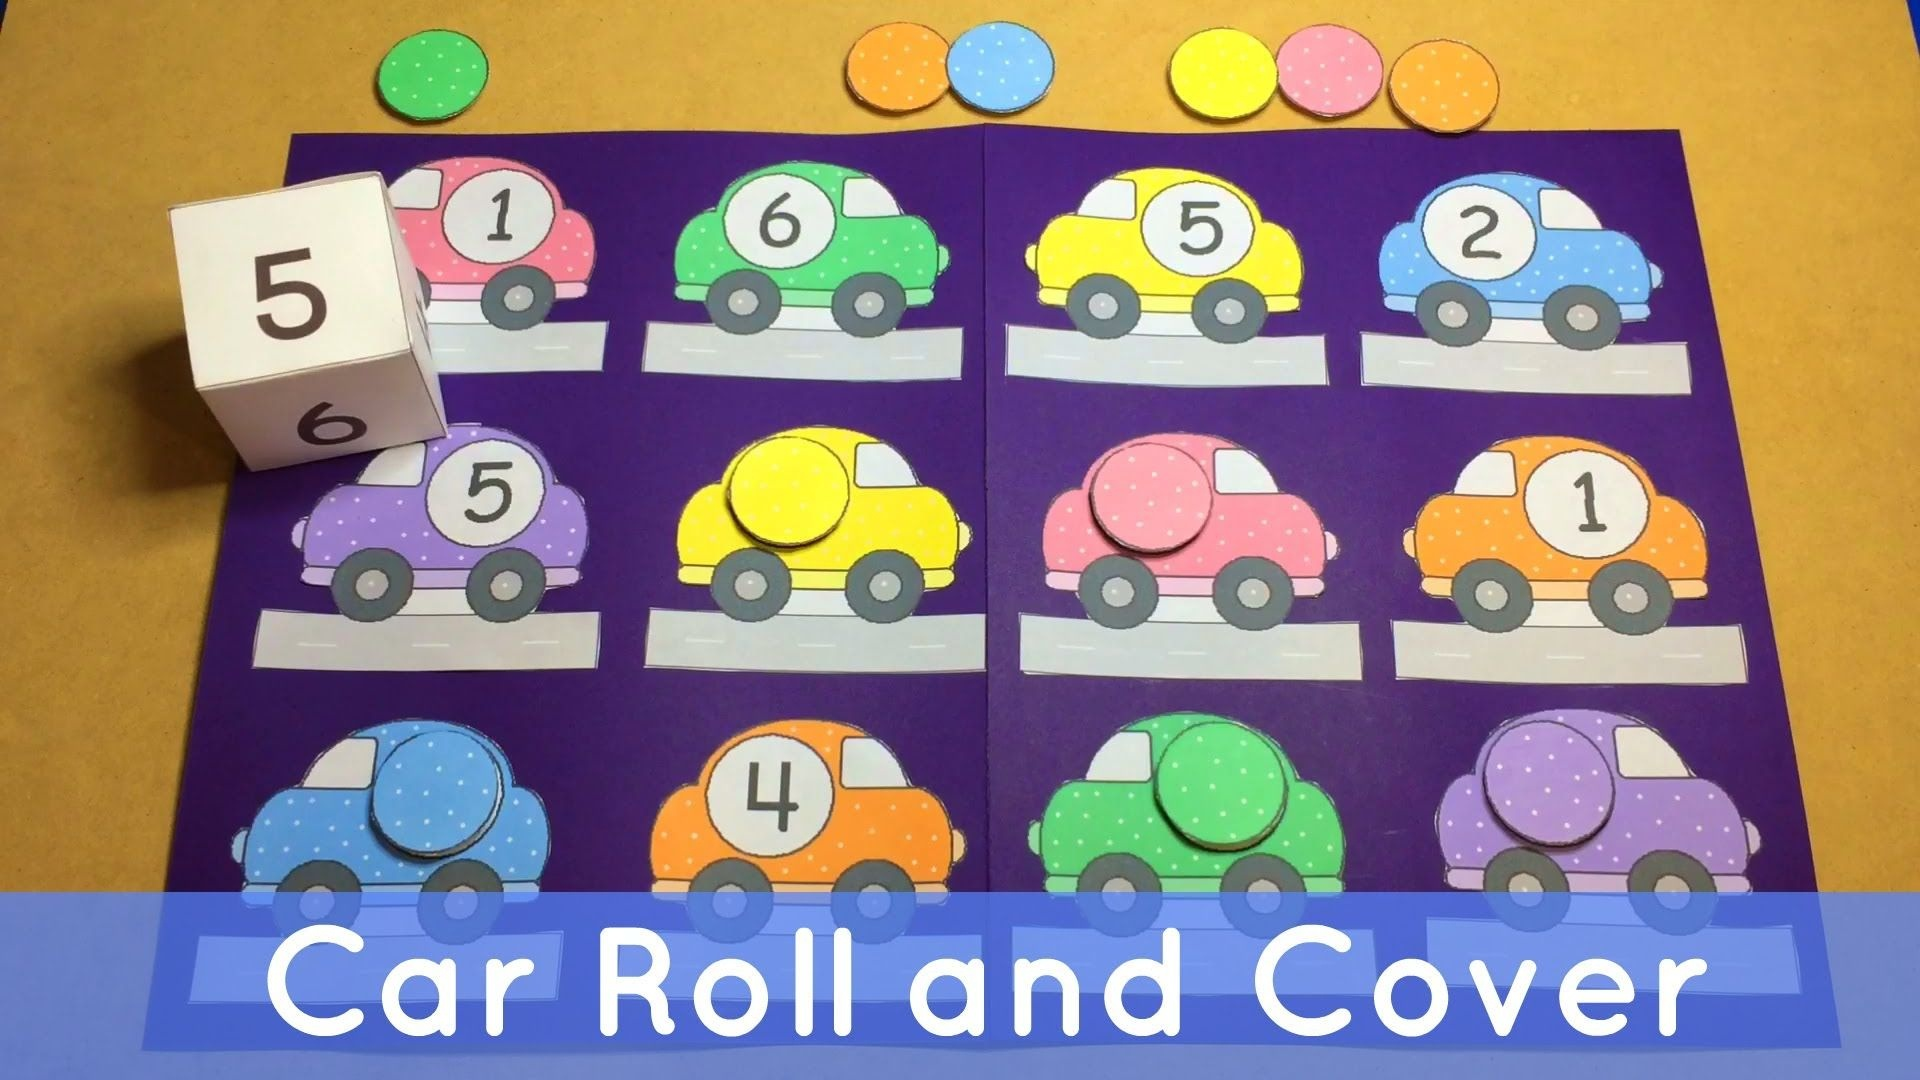 Car Roll And Cover - Preschool File Folder Game For Math Centers - Free Printable Math File Folder Games For Preschoolers